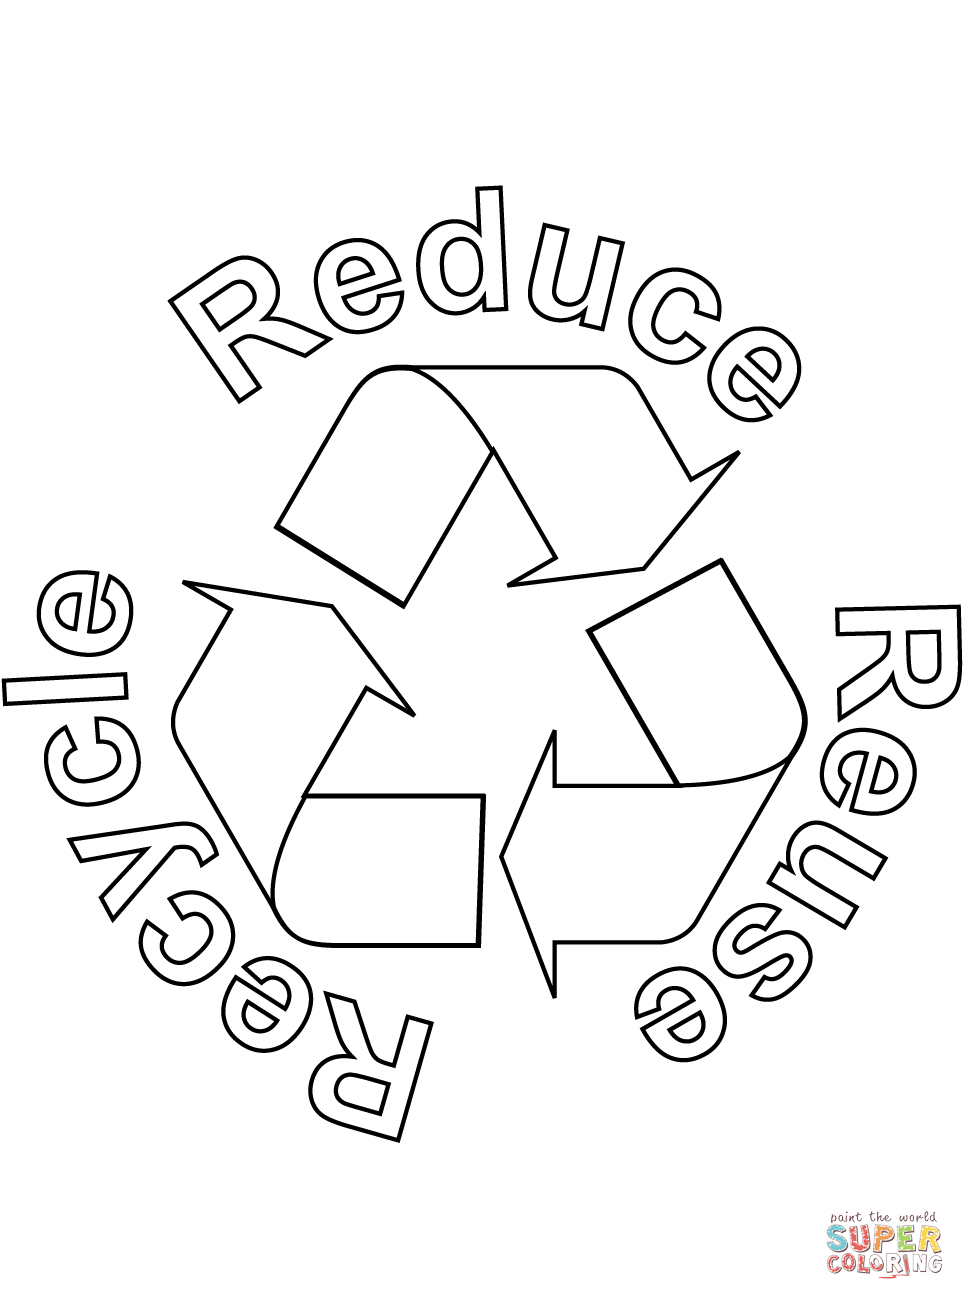 reduce reuse recycle coloring page free printable coloring pages